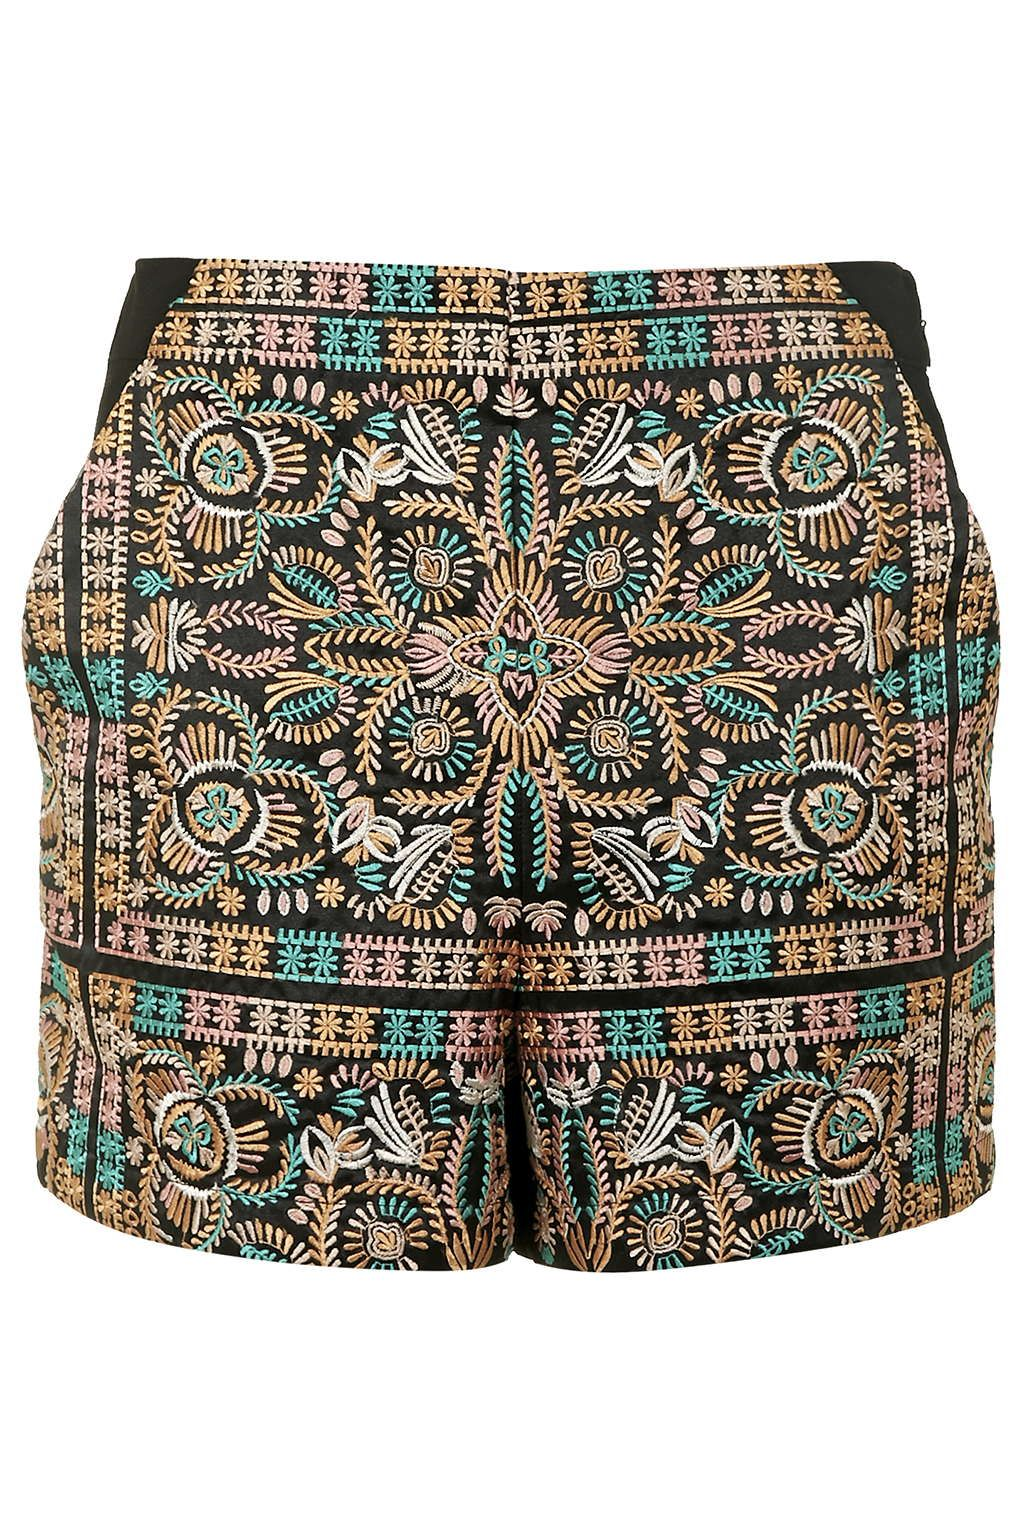 High-Waisted Embroidered Shorts - Shorts - Clothing | Summer of ...